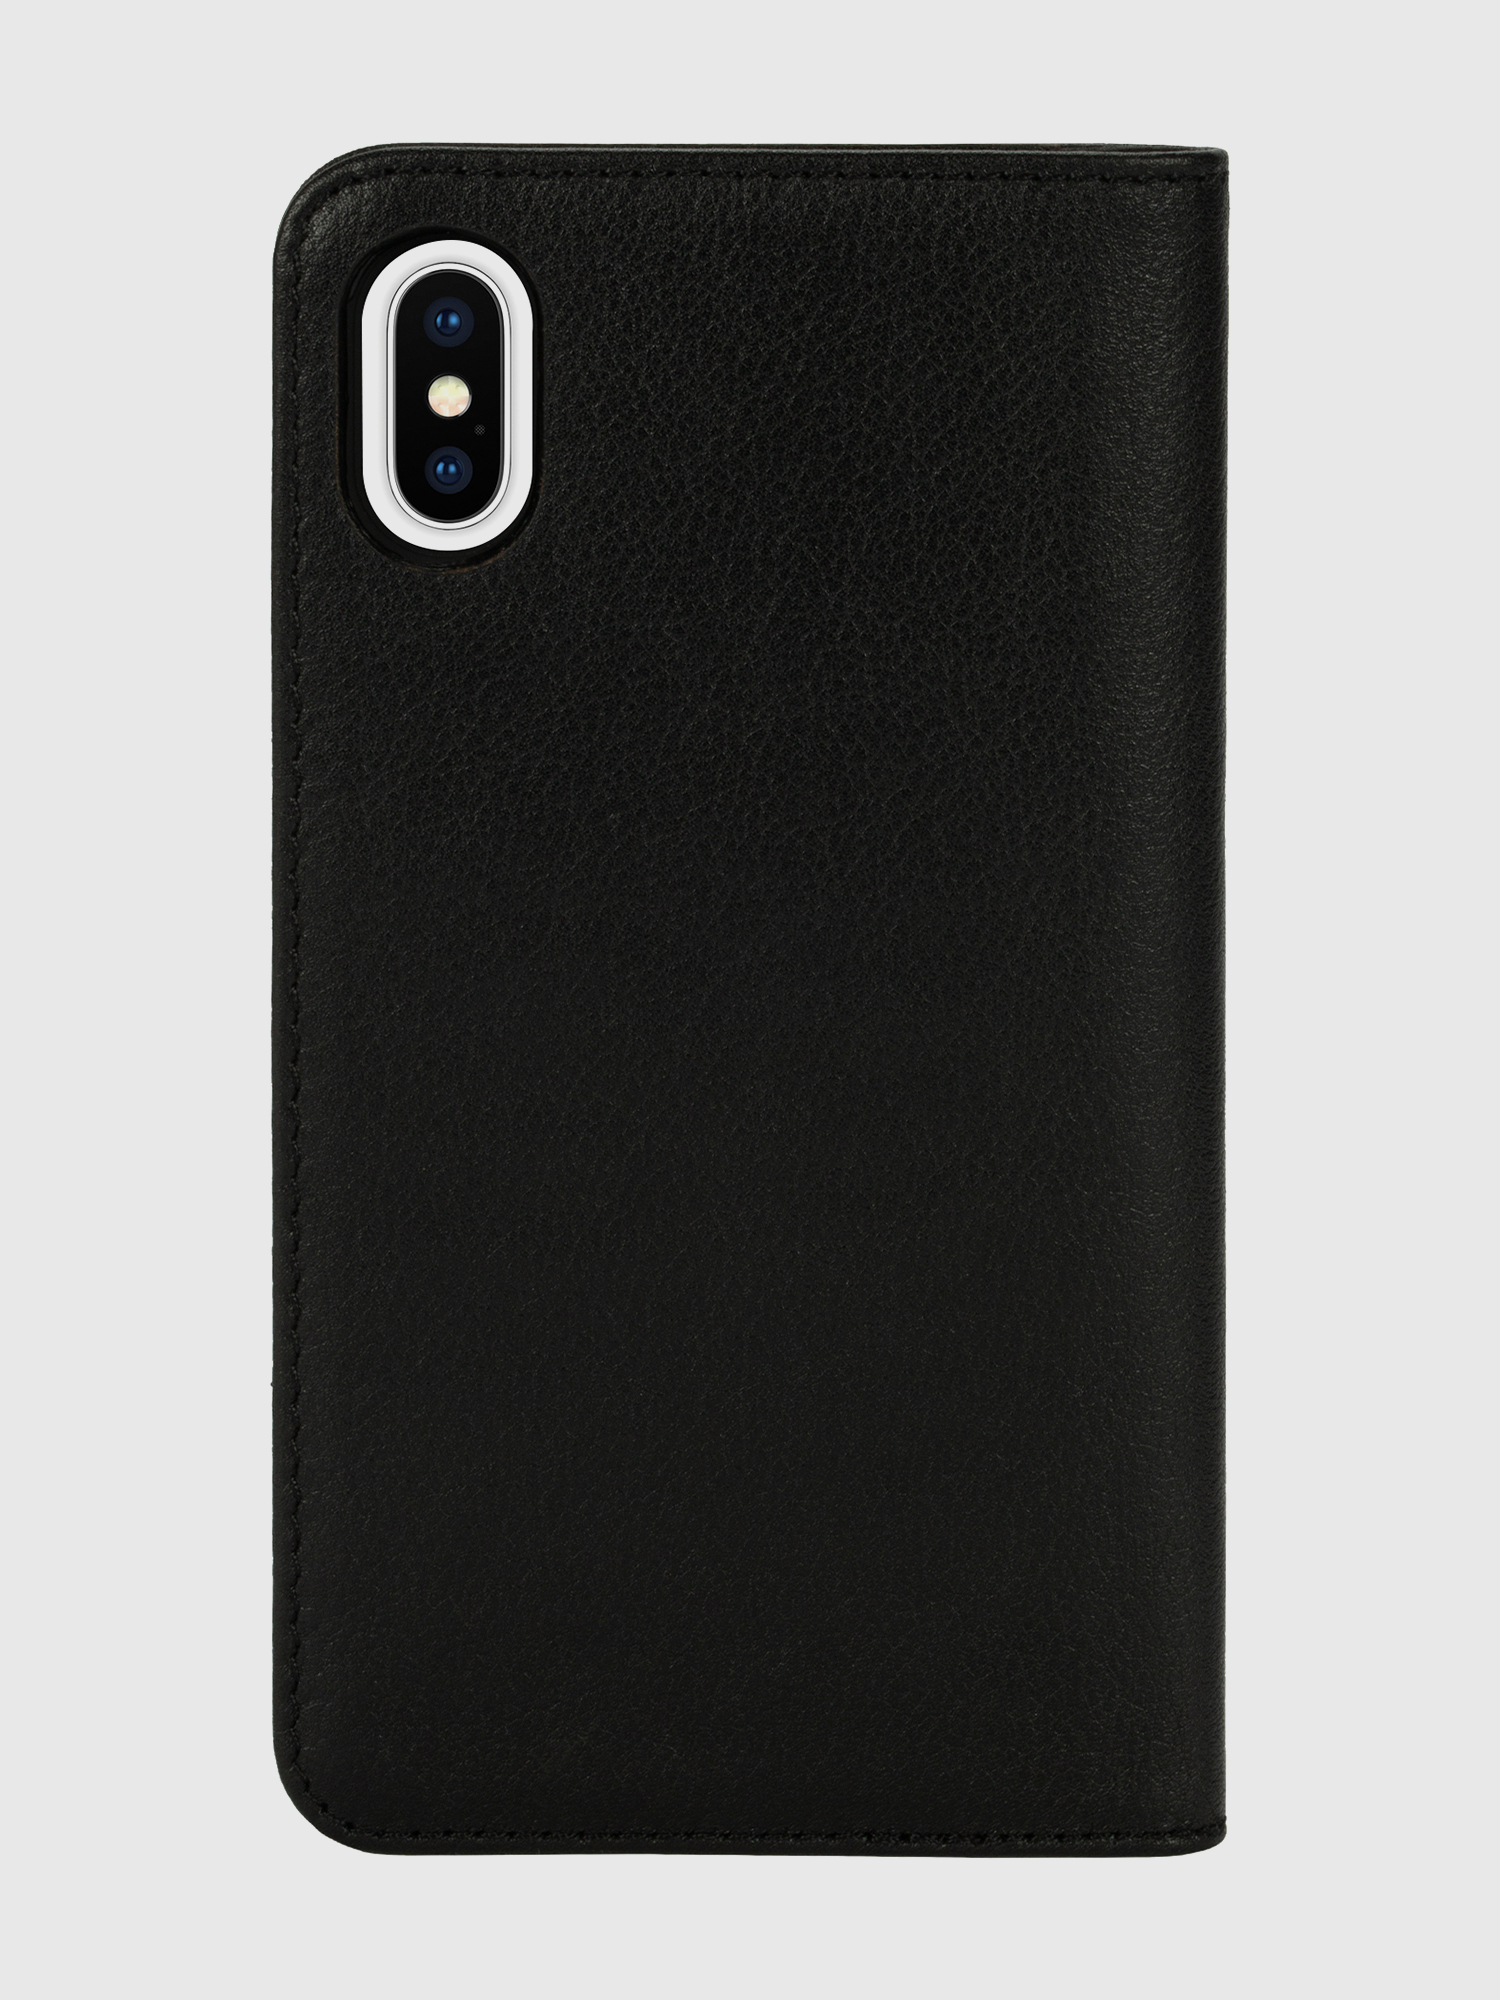 Diesel - DIESEL 2-IN-1 FOLIO CASE FOR IPHONE XS & IPHONE X,  - Fundas tipo libro - Image 2